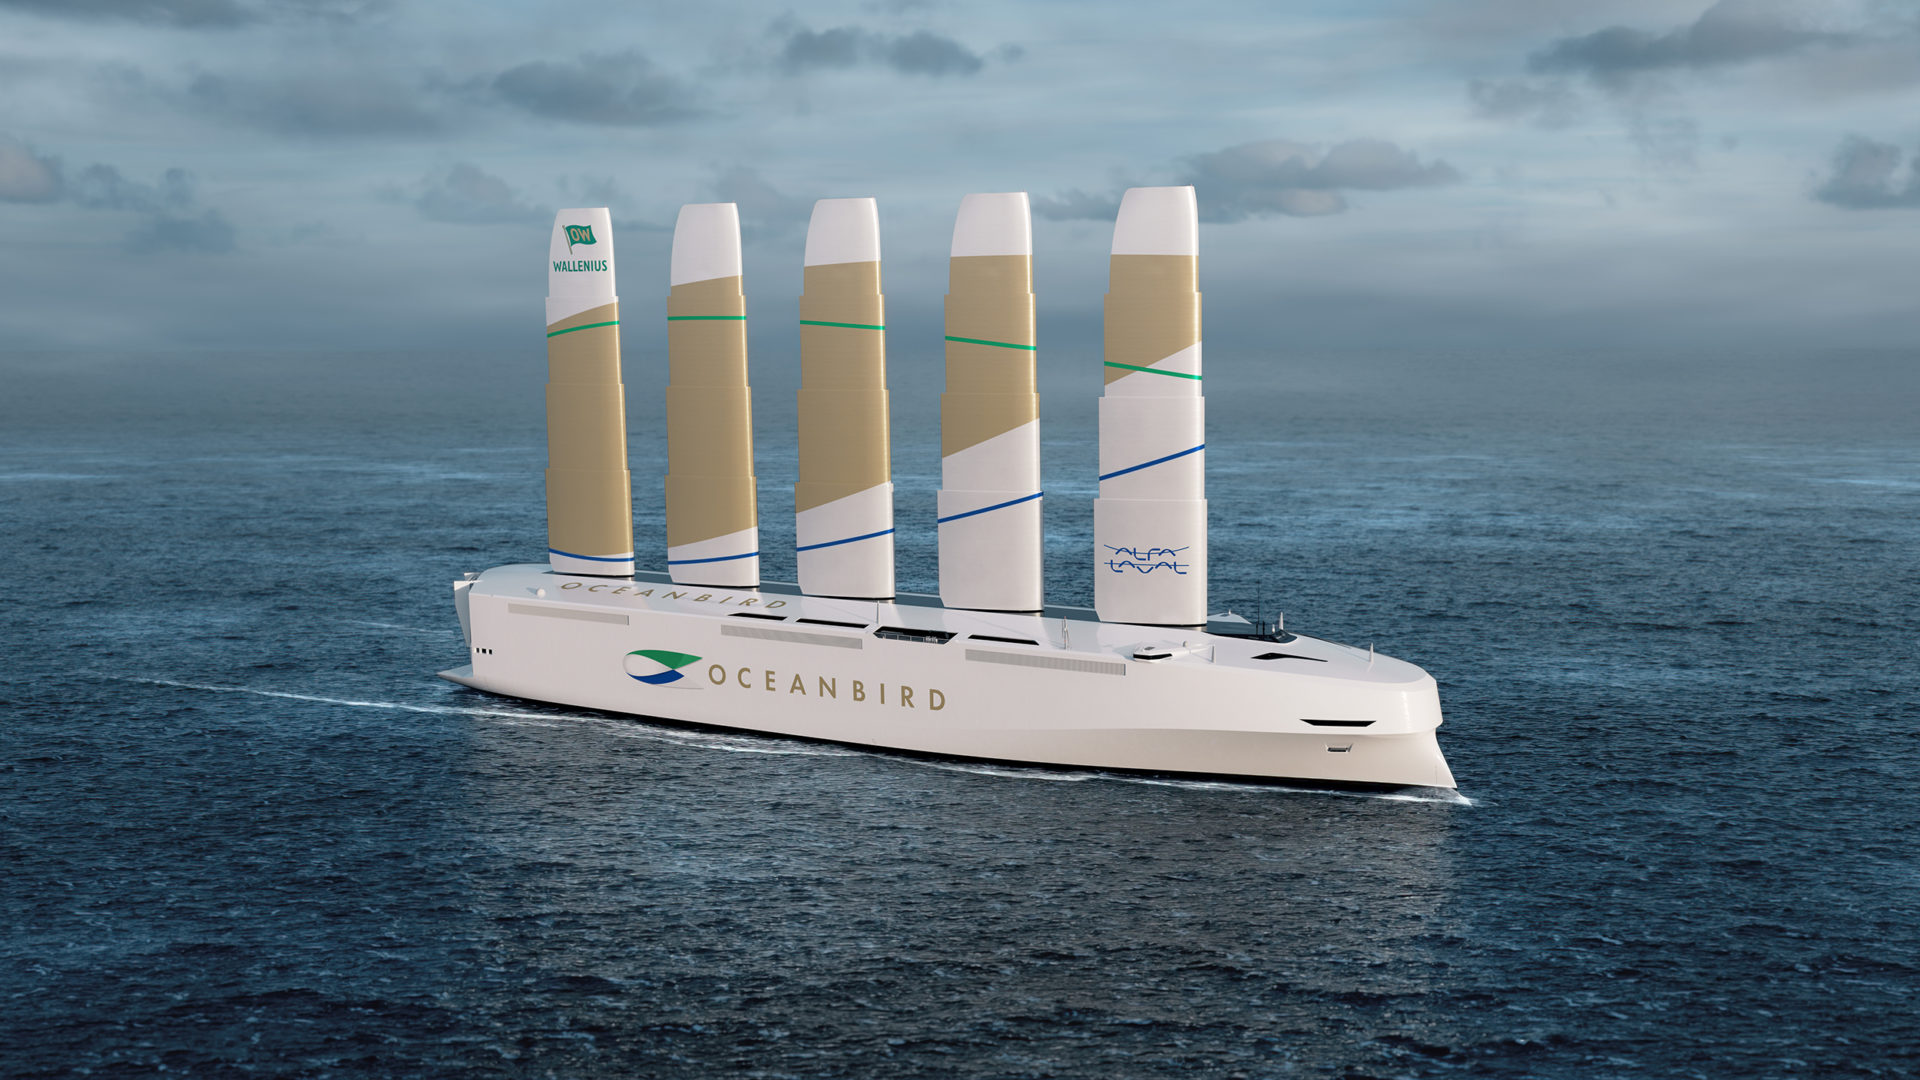 Wallenius and Alfa Laval in joint venture to realise wind-powered Oceanbird